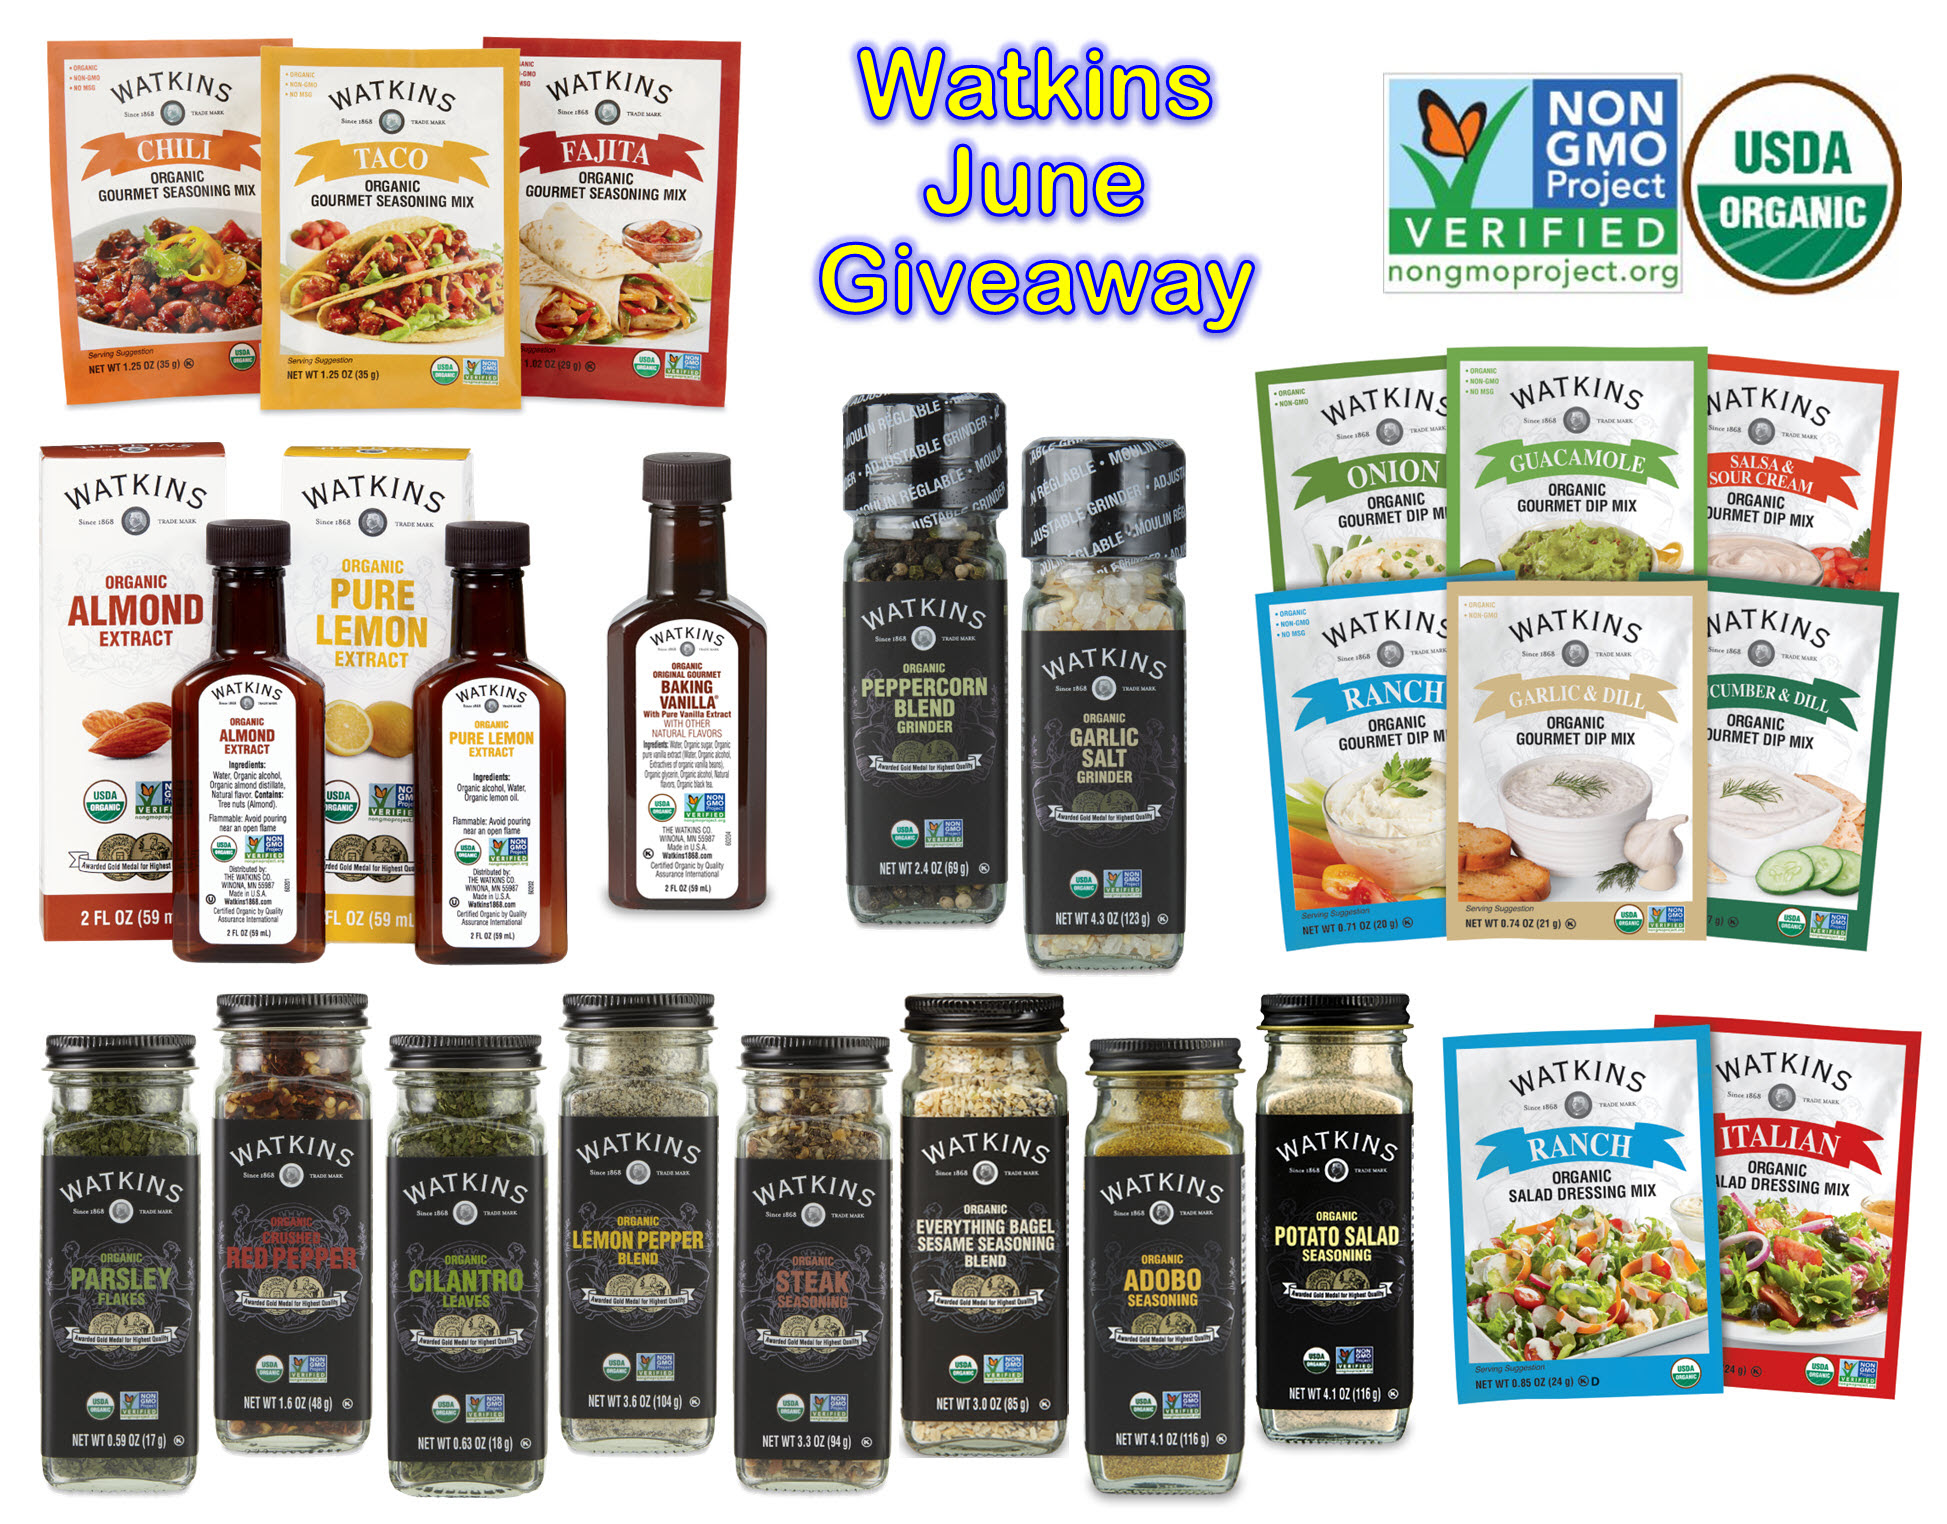 Watkins June Win Free Vanilla Assortment